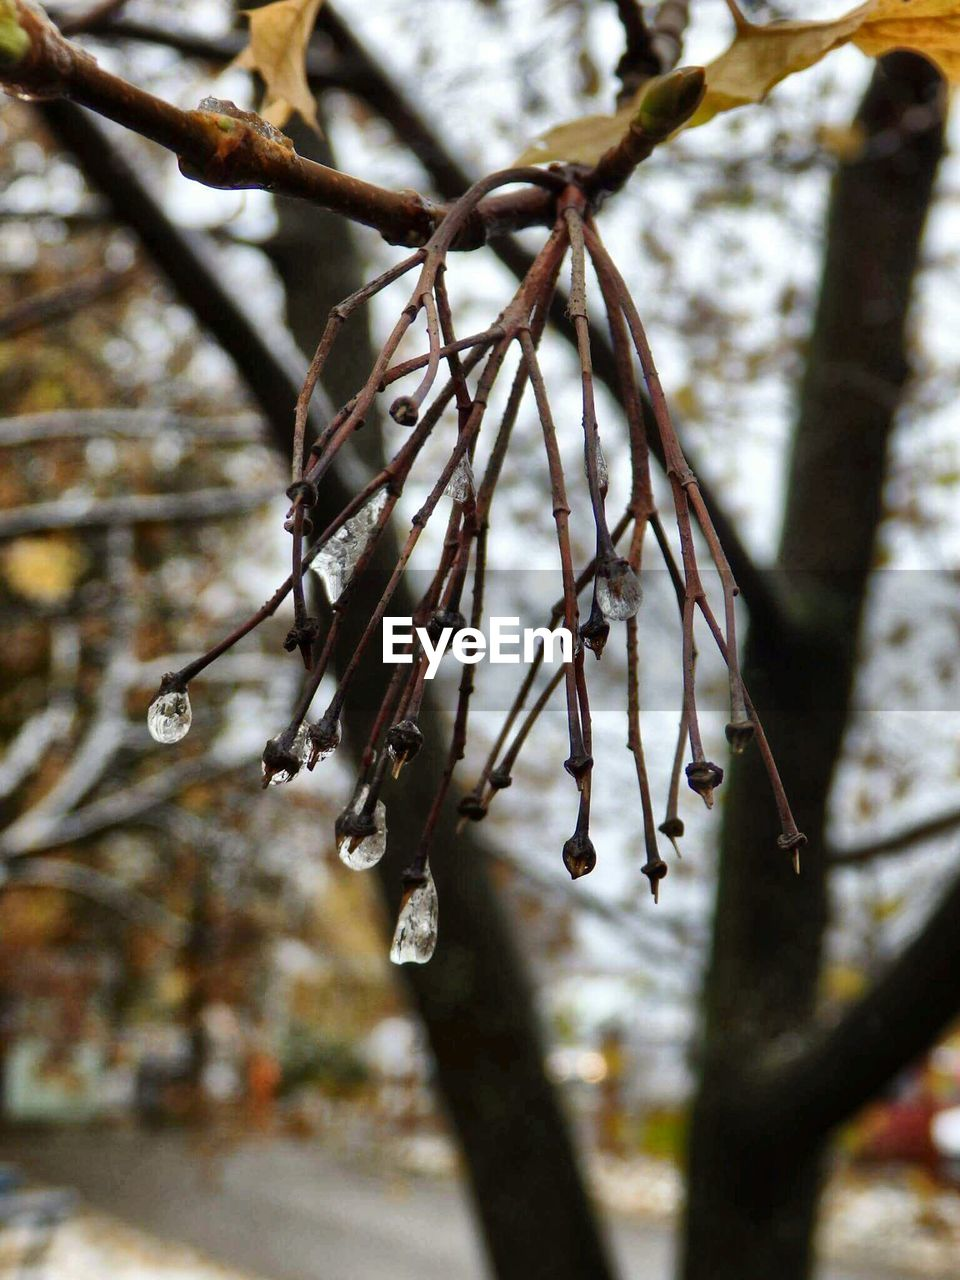 plant, tree, focus on foreground, branch, close-up, no people, nature, day, beauty in nature, growth, tranquility, selective focus, fragility, vulnerability, outdoors, twig, pussy willow, dry, drop